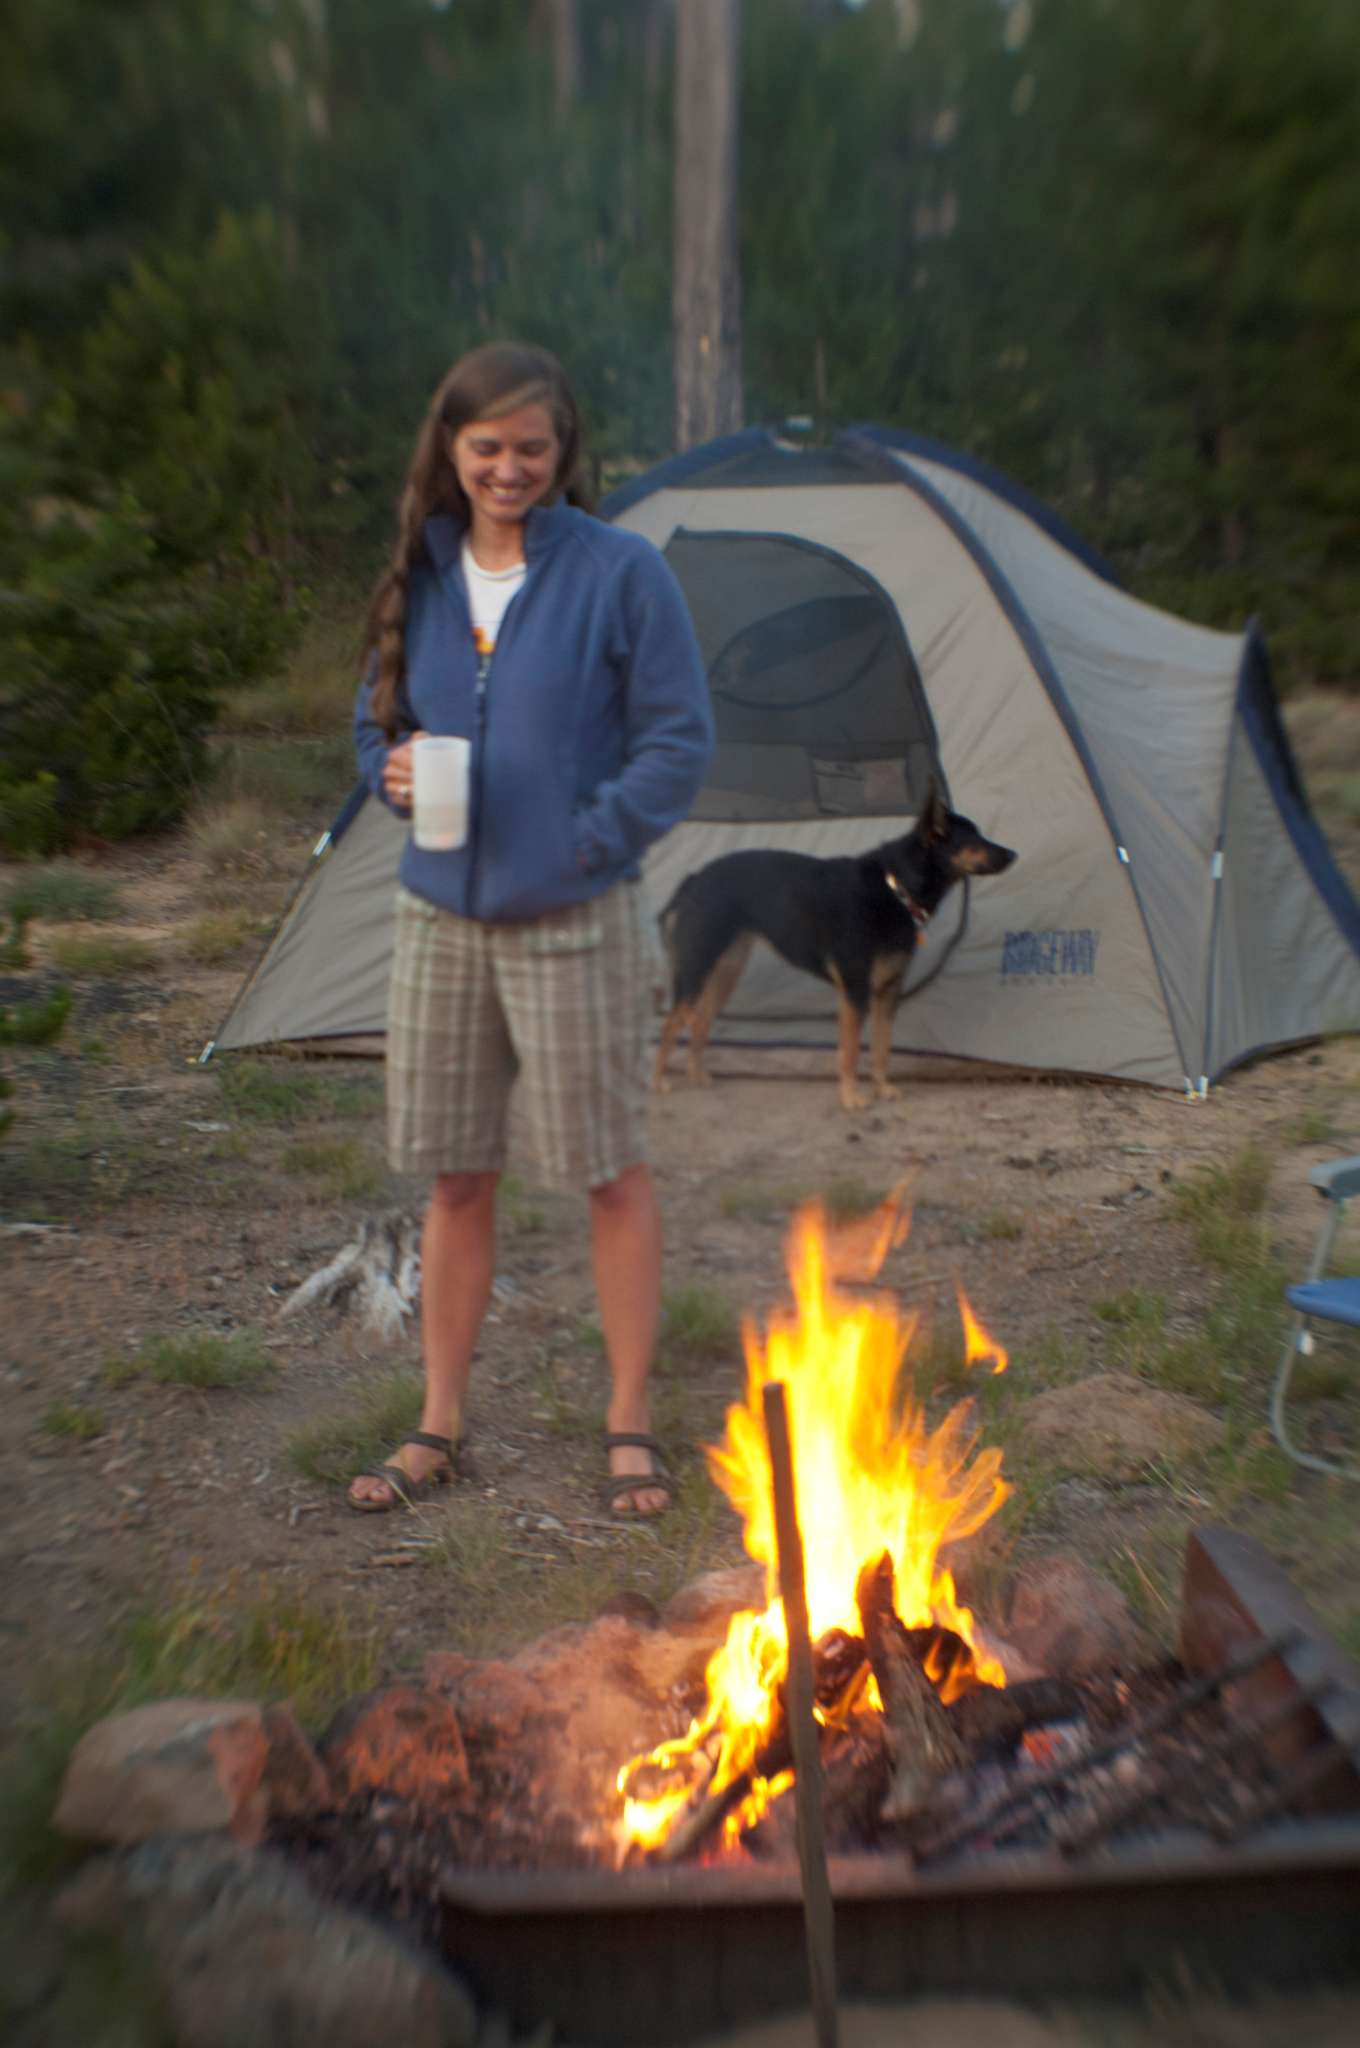 Blogger Tawna hanging around the campsite at Swamp Wells with her dog, Bindi.